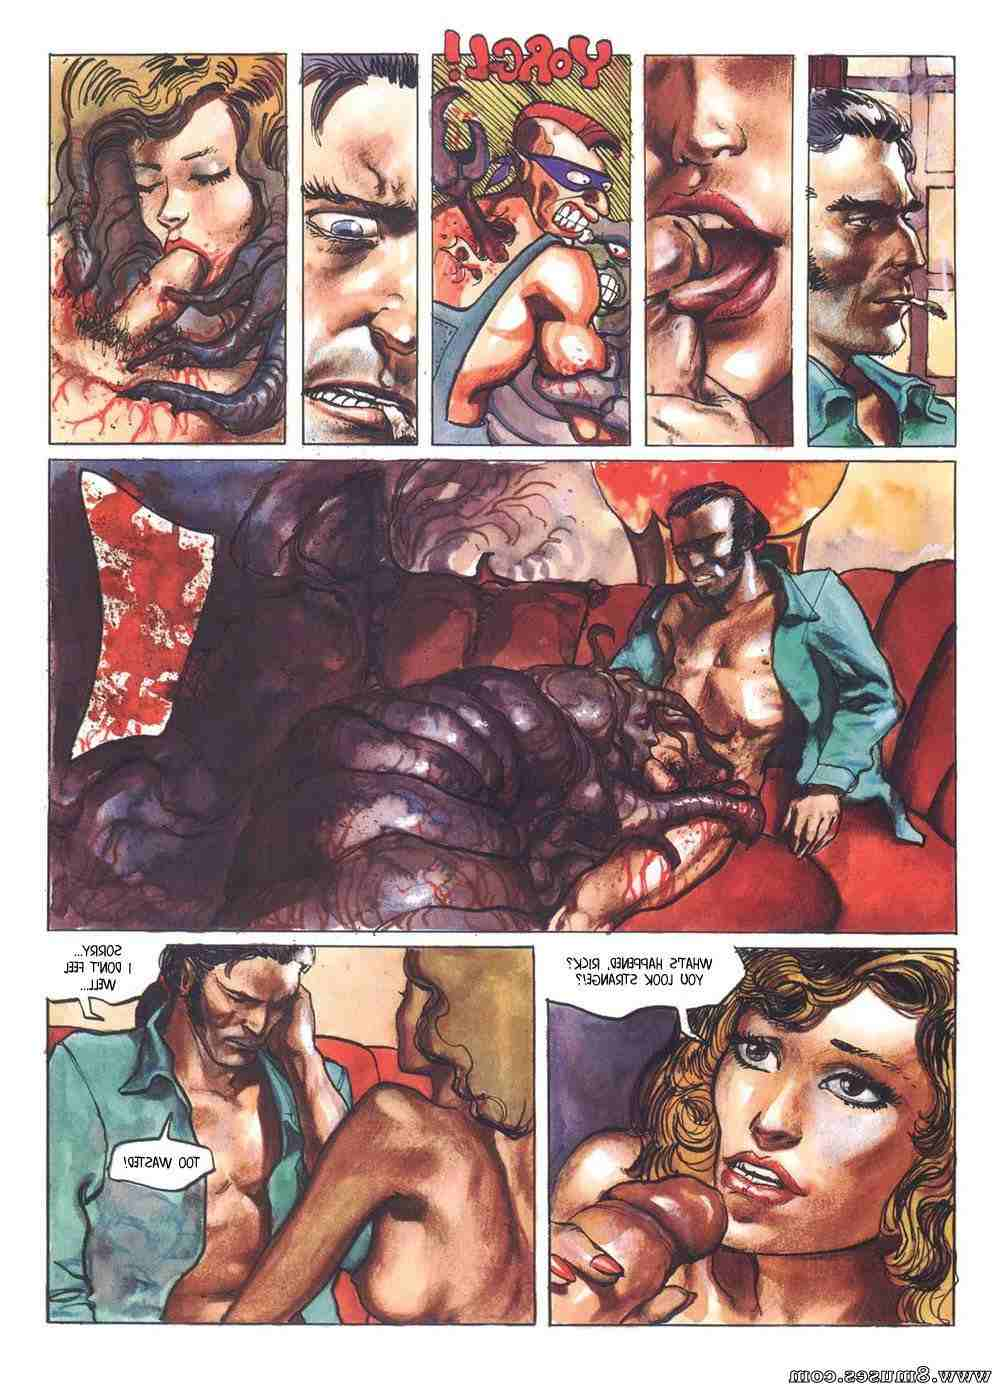 Various-Authors/Starzo/Mike-Mercury Mike_Mercury__8muses_-_Sex_and_Porn_Comics_9.jpg